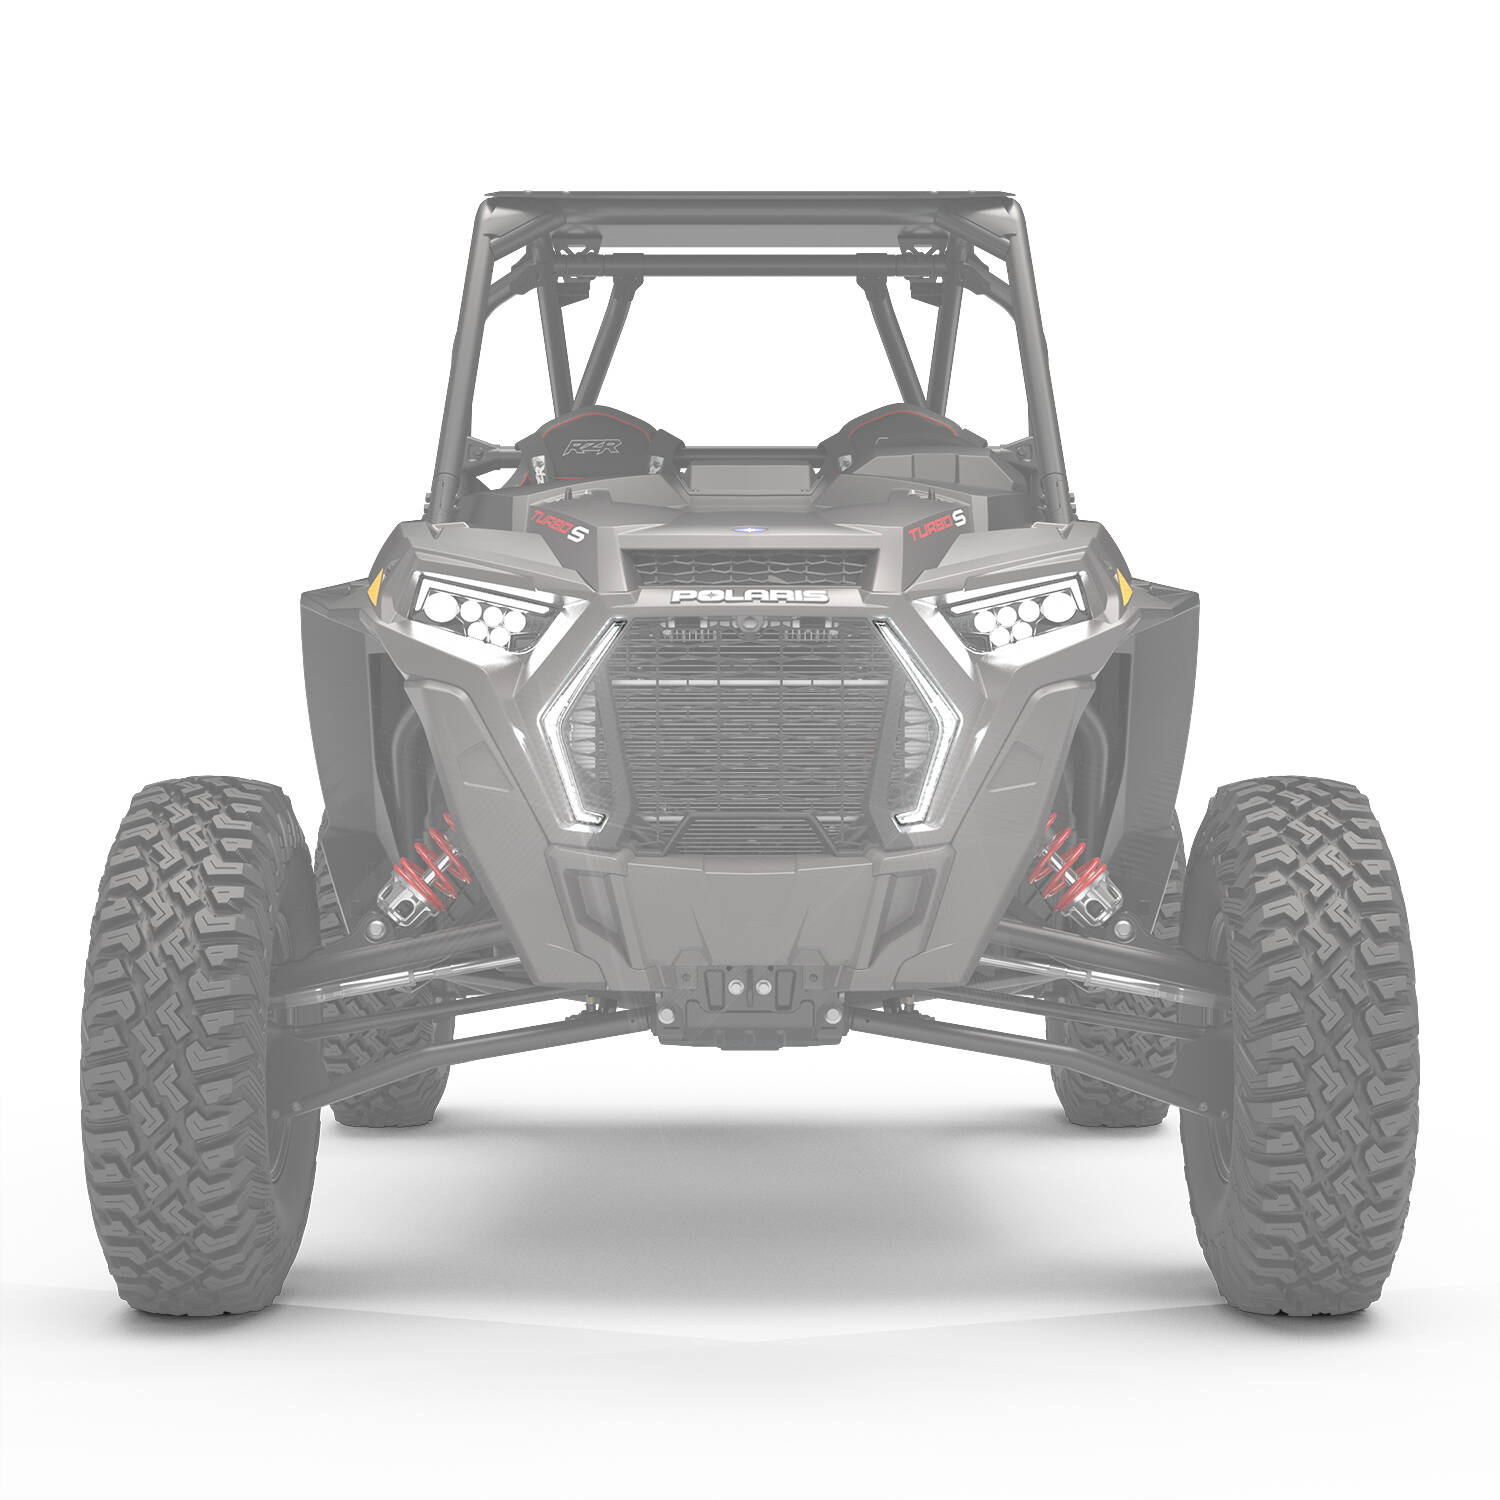 Fang Accent Light Kit - Front/Rear